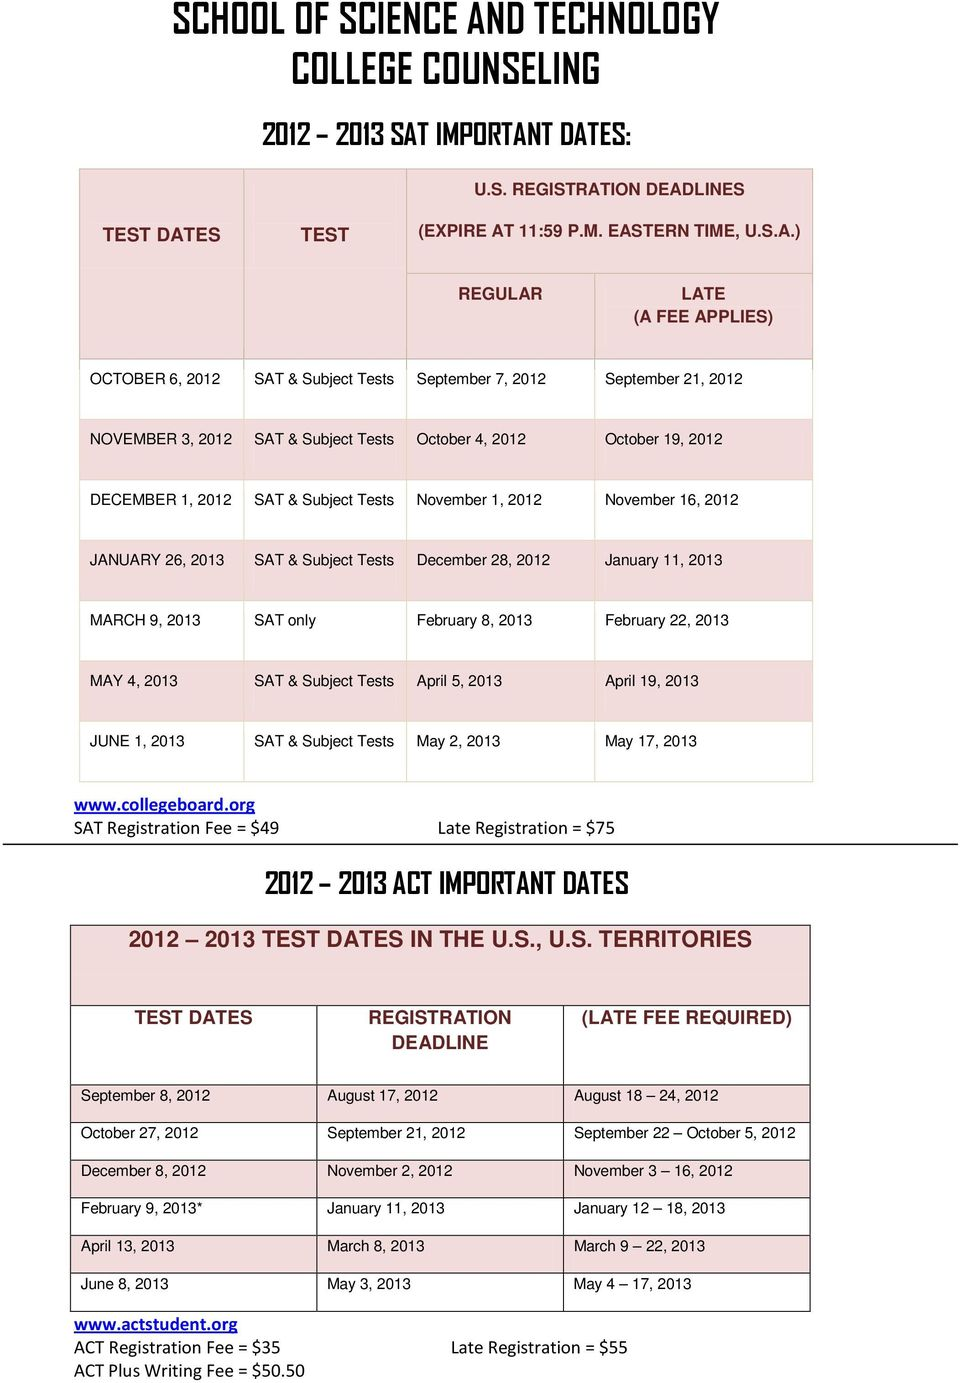 T DATES: U.S. REGISTRATION DEADLINES TEST DATES TEST (EXPIRE AT 11:59 P.M. EASTERN TIME, U.S.A.) REGULAR LATE (A FEE APPLIES) OCTOBER 6, 2012 SAT & Subject Tests September 7, 2012 September 21, 2012